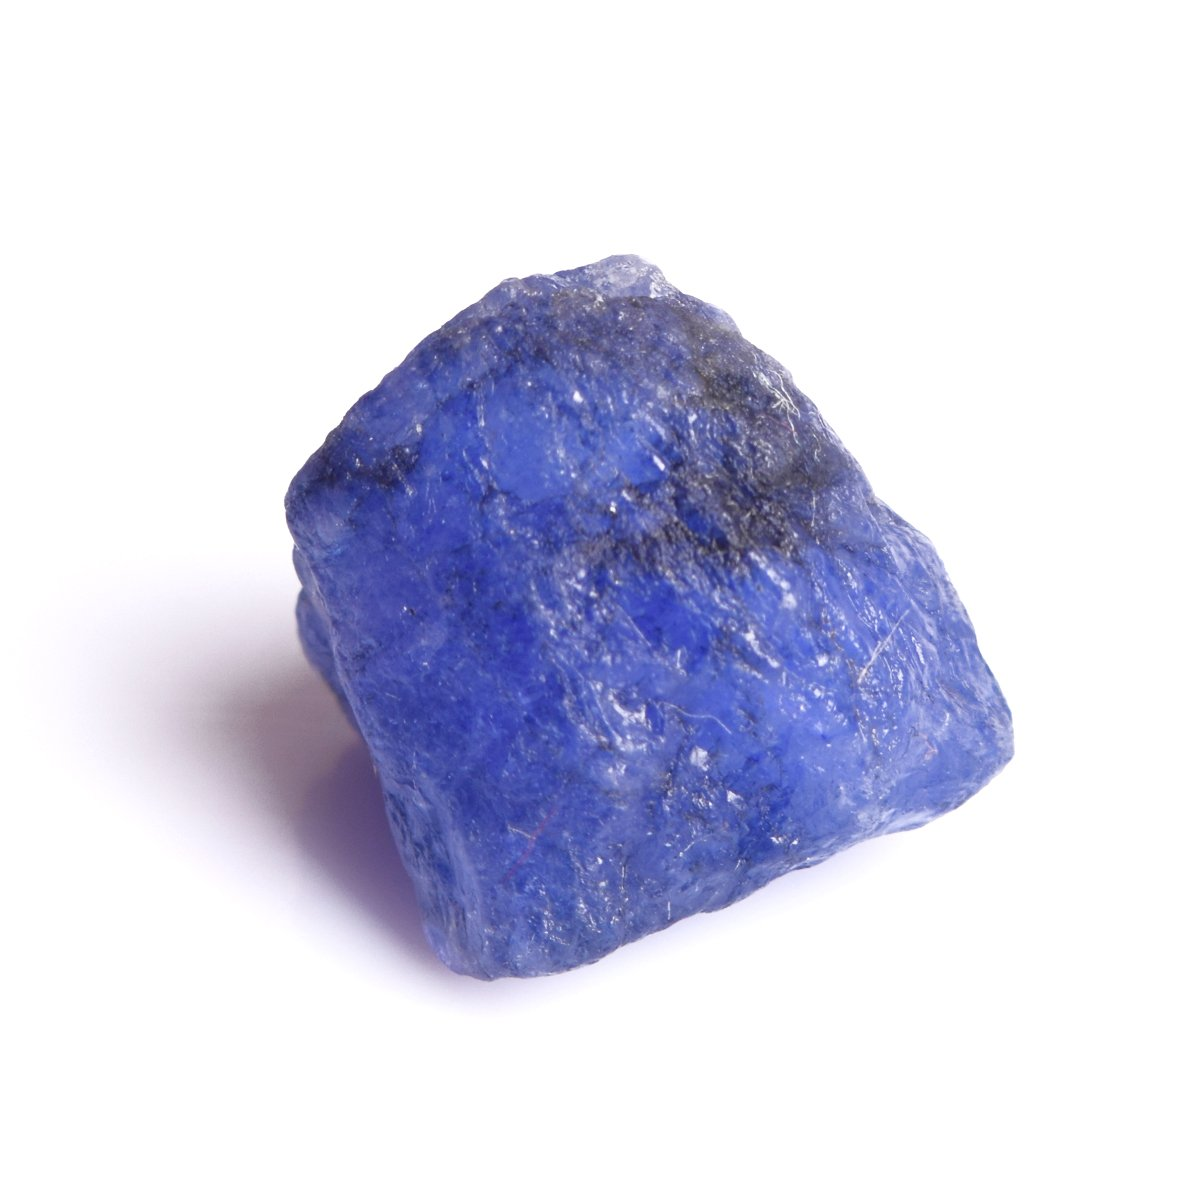 Certified Raw Rough Sapphire 22.80 Ct Untreated Uncut Natural Blue Sapphire Loose Gemstone DP-630 hamlet e commerce